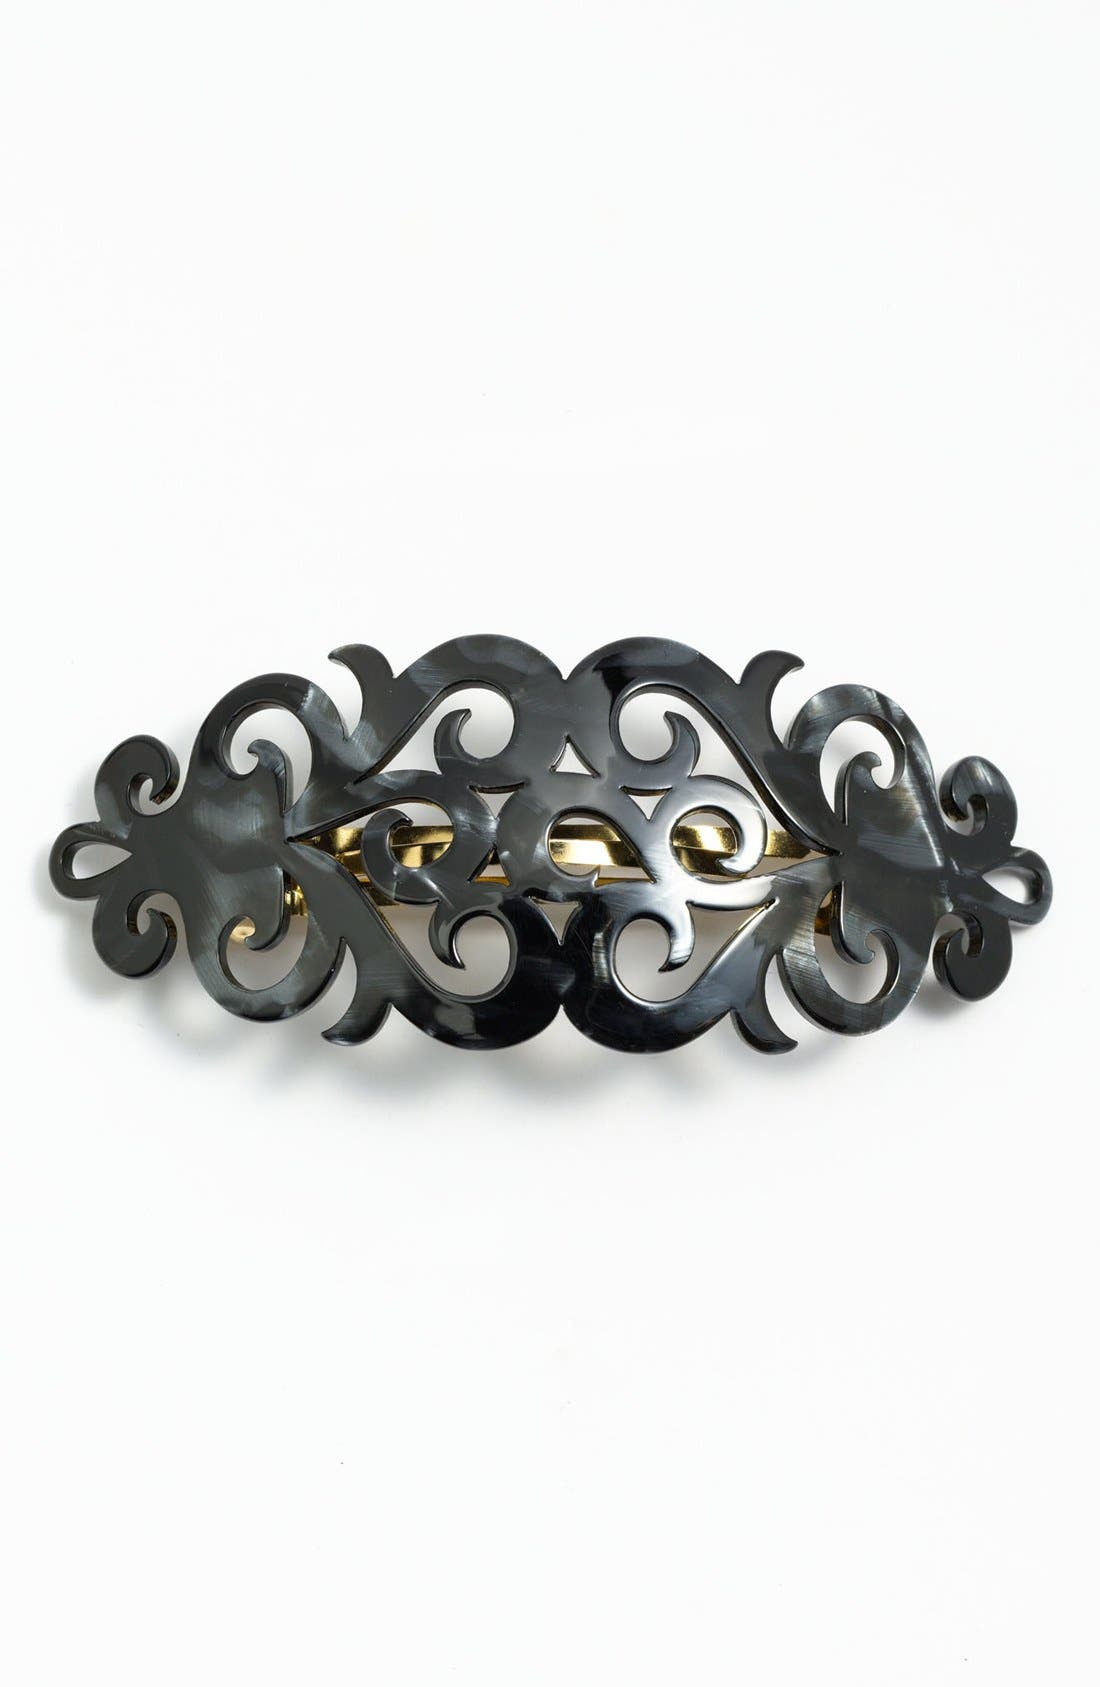 Main Image - France Luxe 'Elysee' Barrette